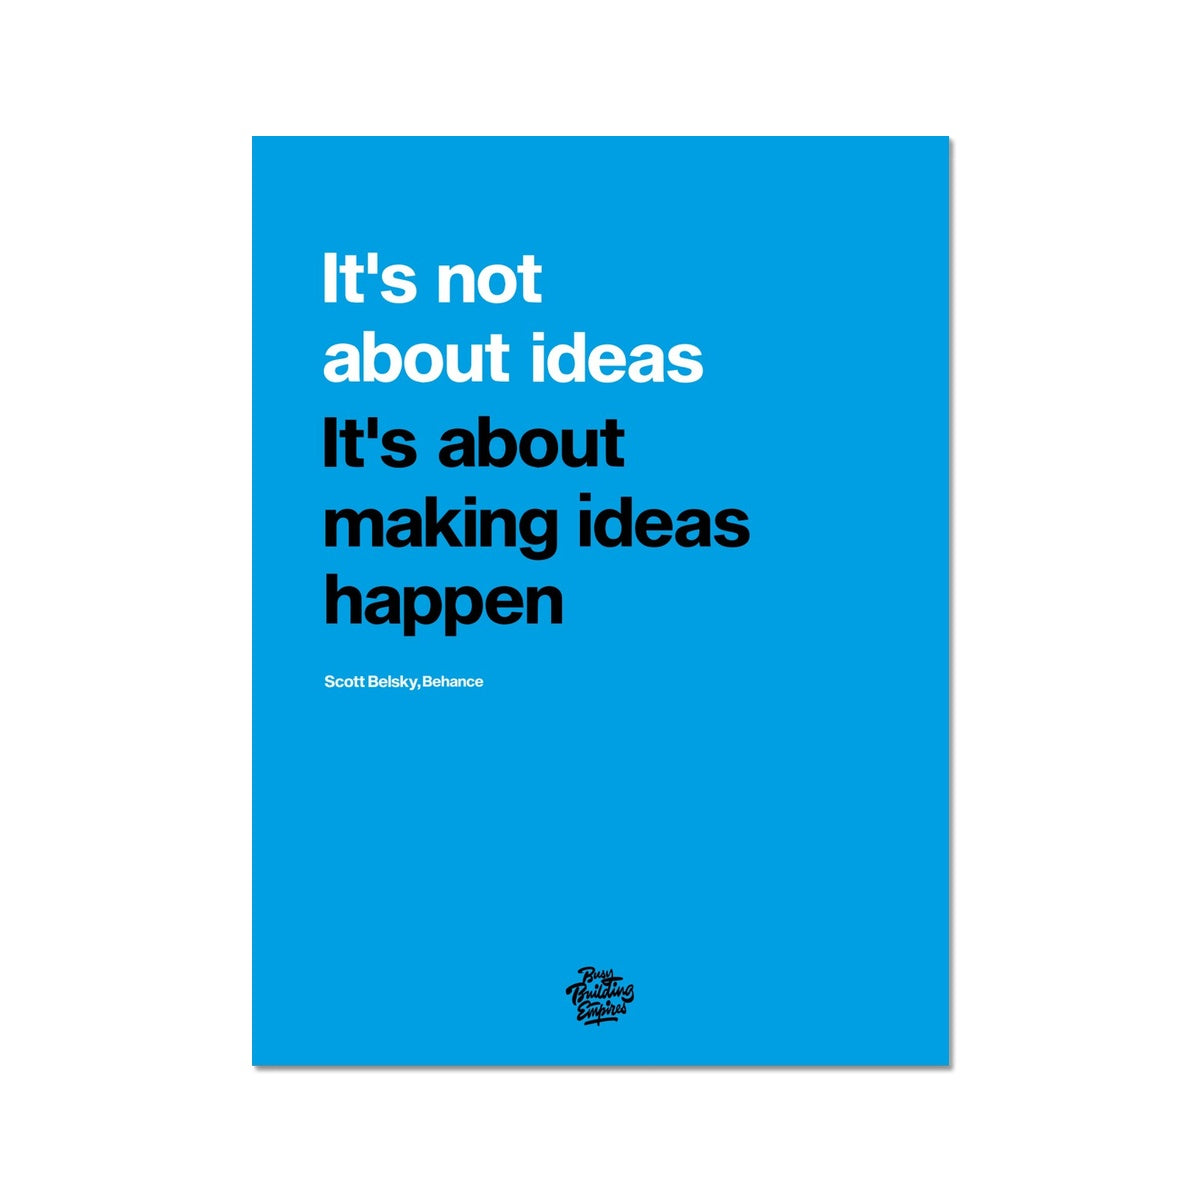 Motivation poster. It's not about ideas, its about making ideas happen. Inspirational wall quotes for home or office